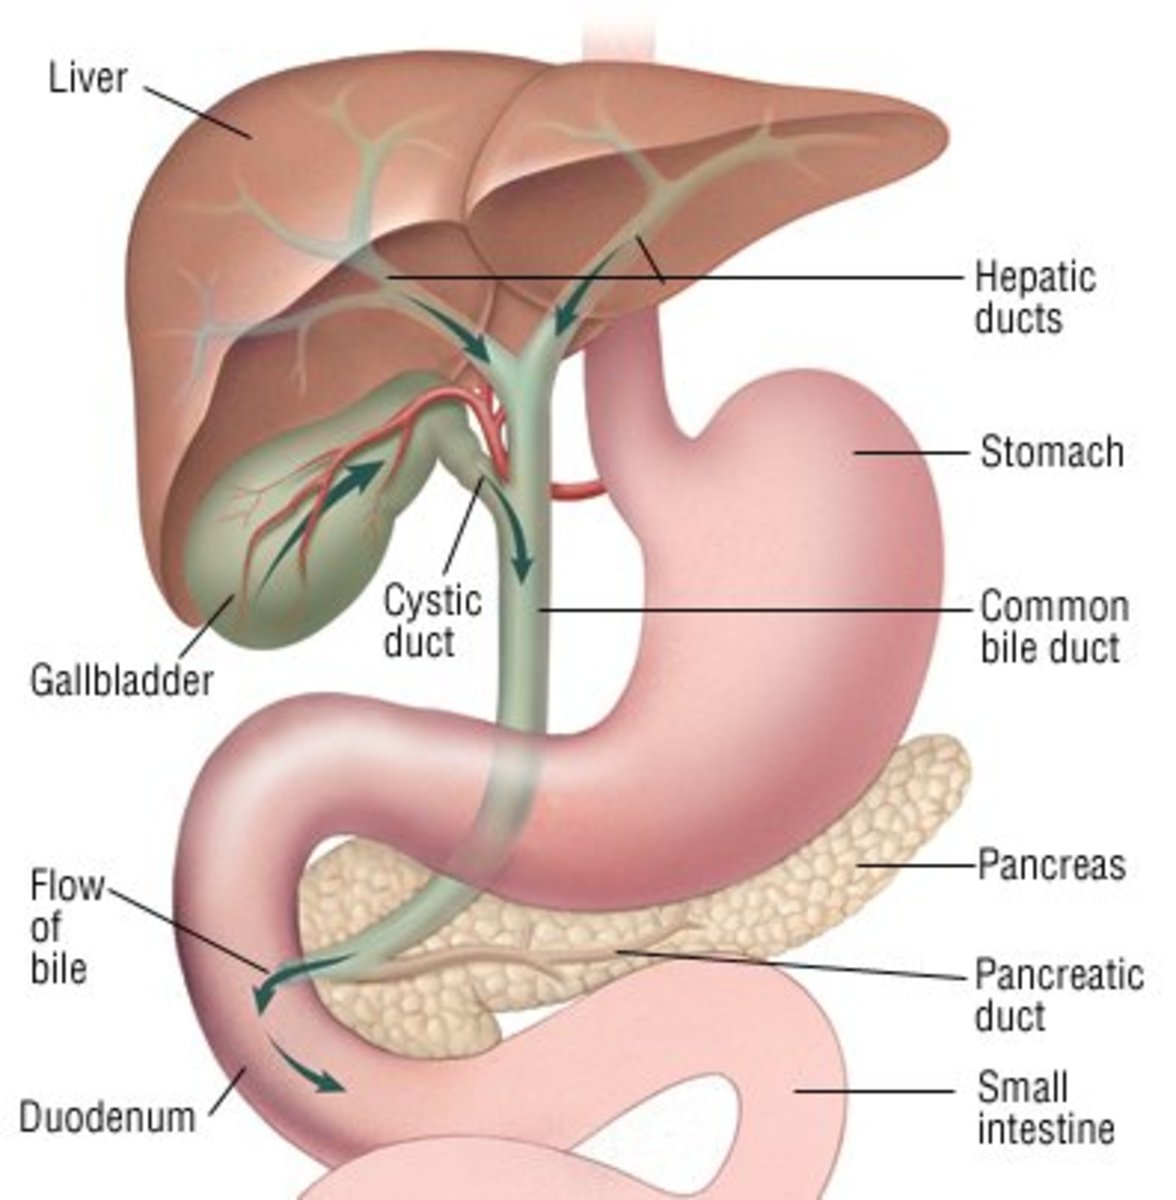 Gallbladder Disease and Gallbladder Dysfunction: Symptoms and Treatment